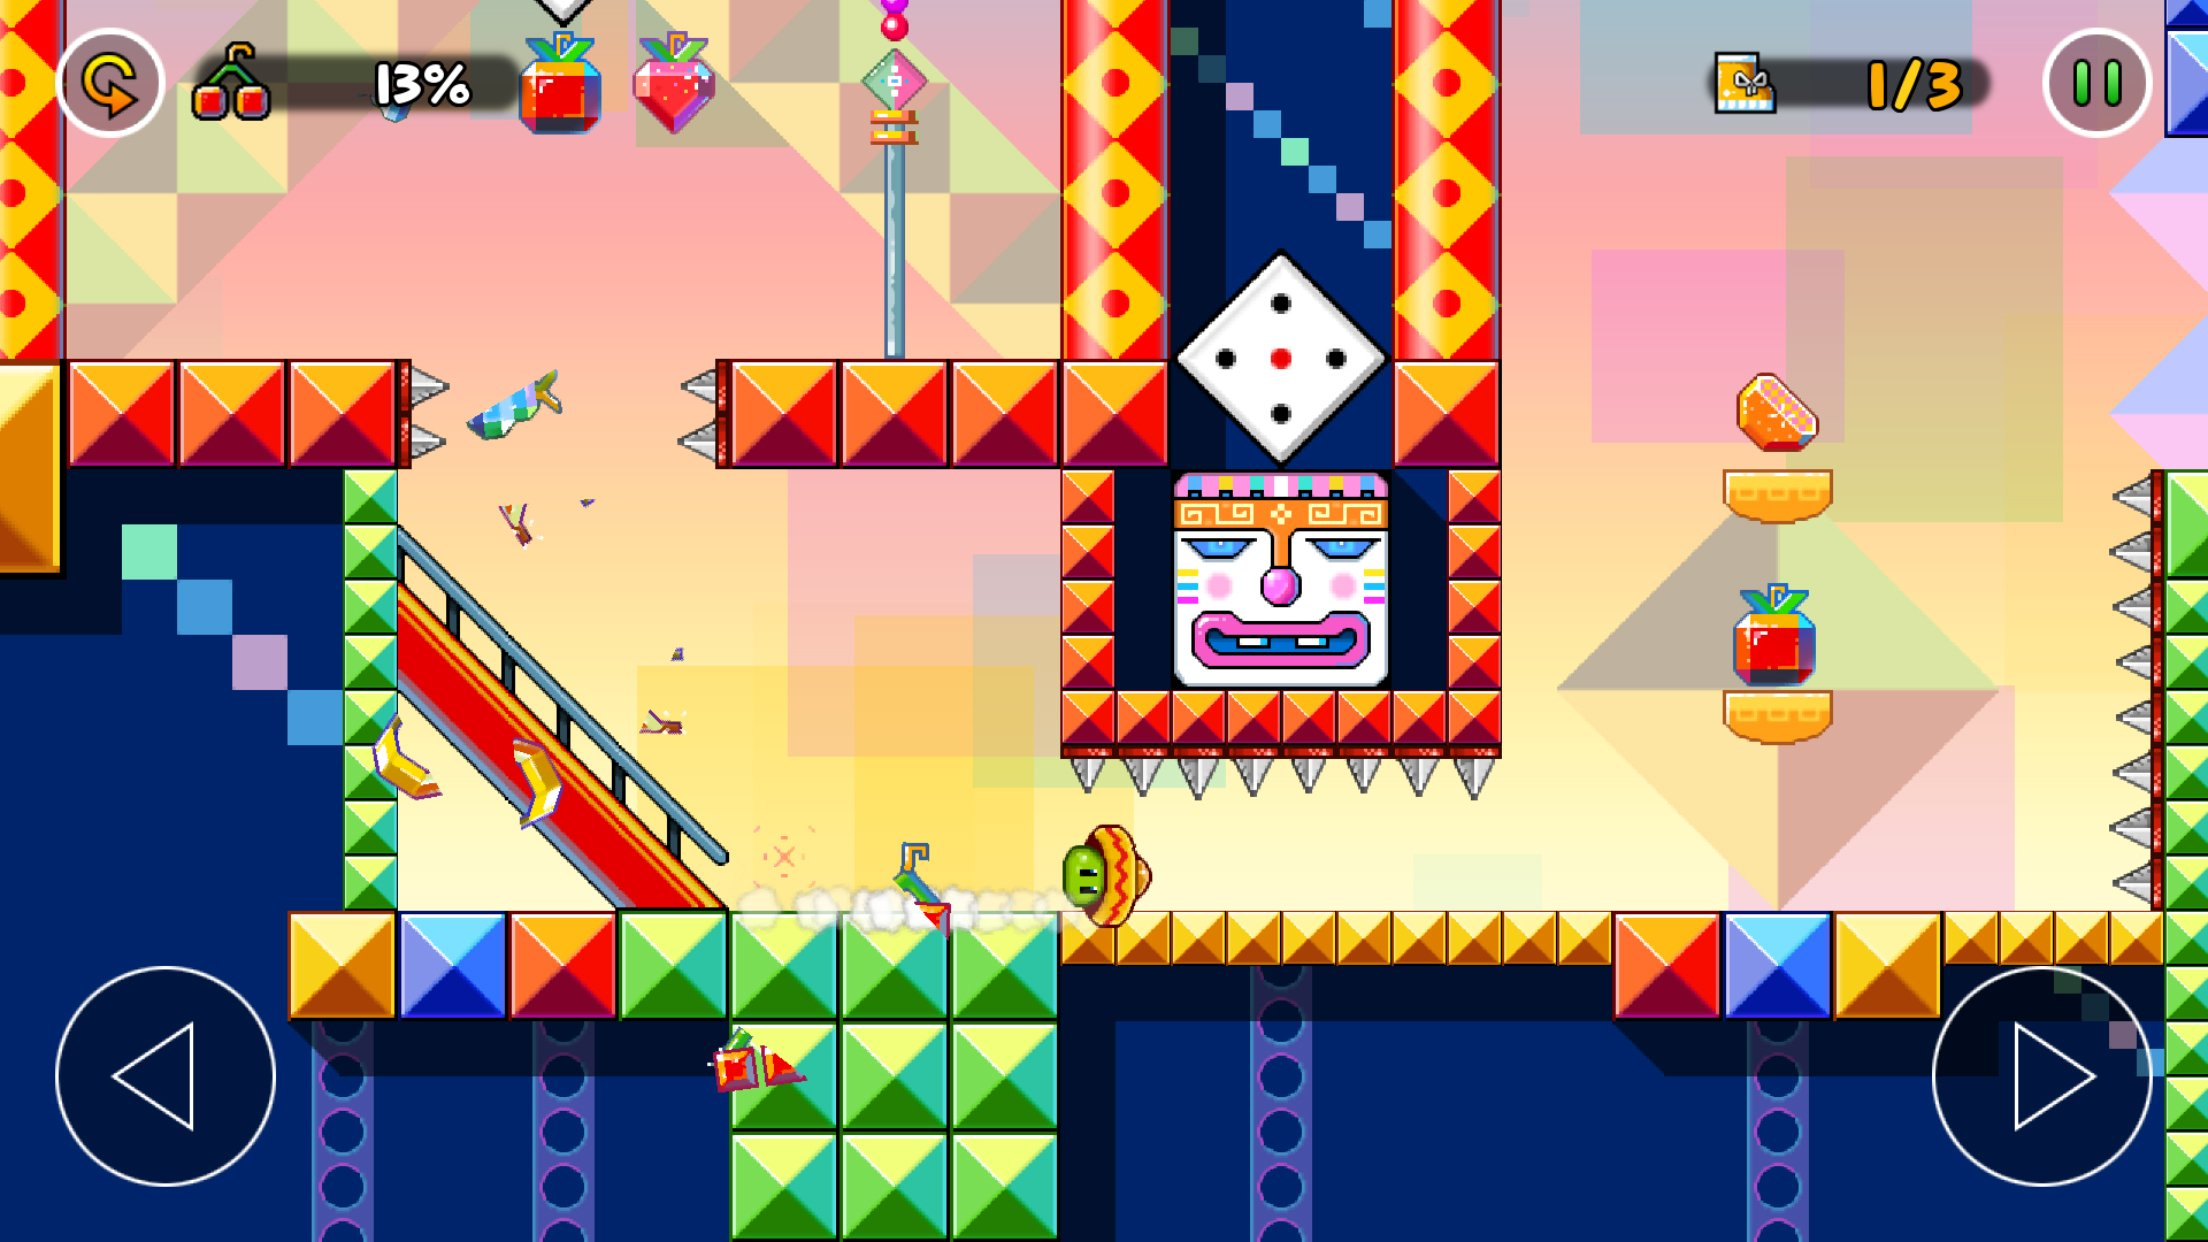 Grab the spectacularly fun platformer Bean Dreams now for free through the Starbucks app